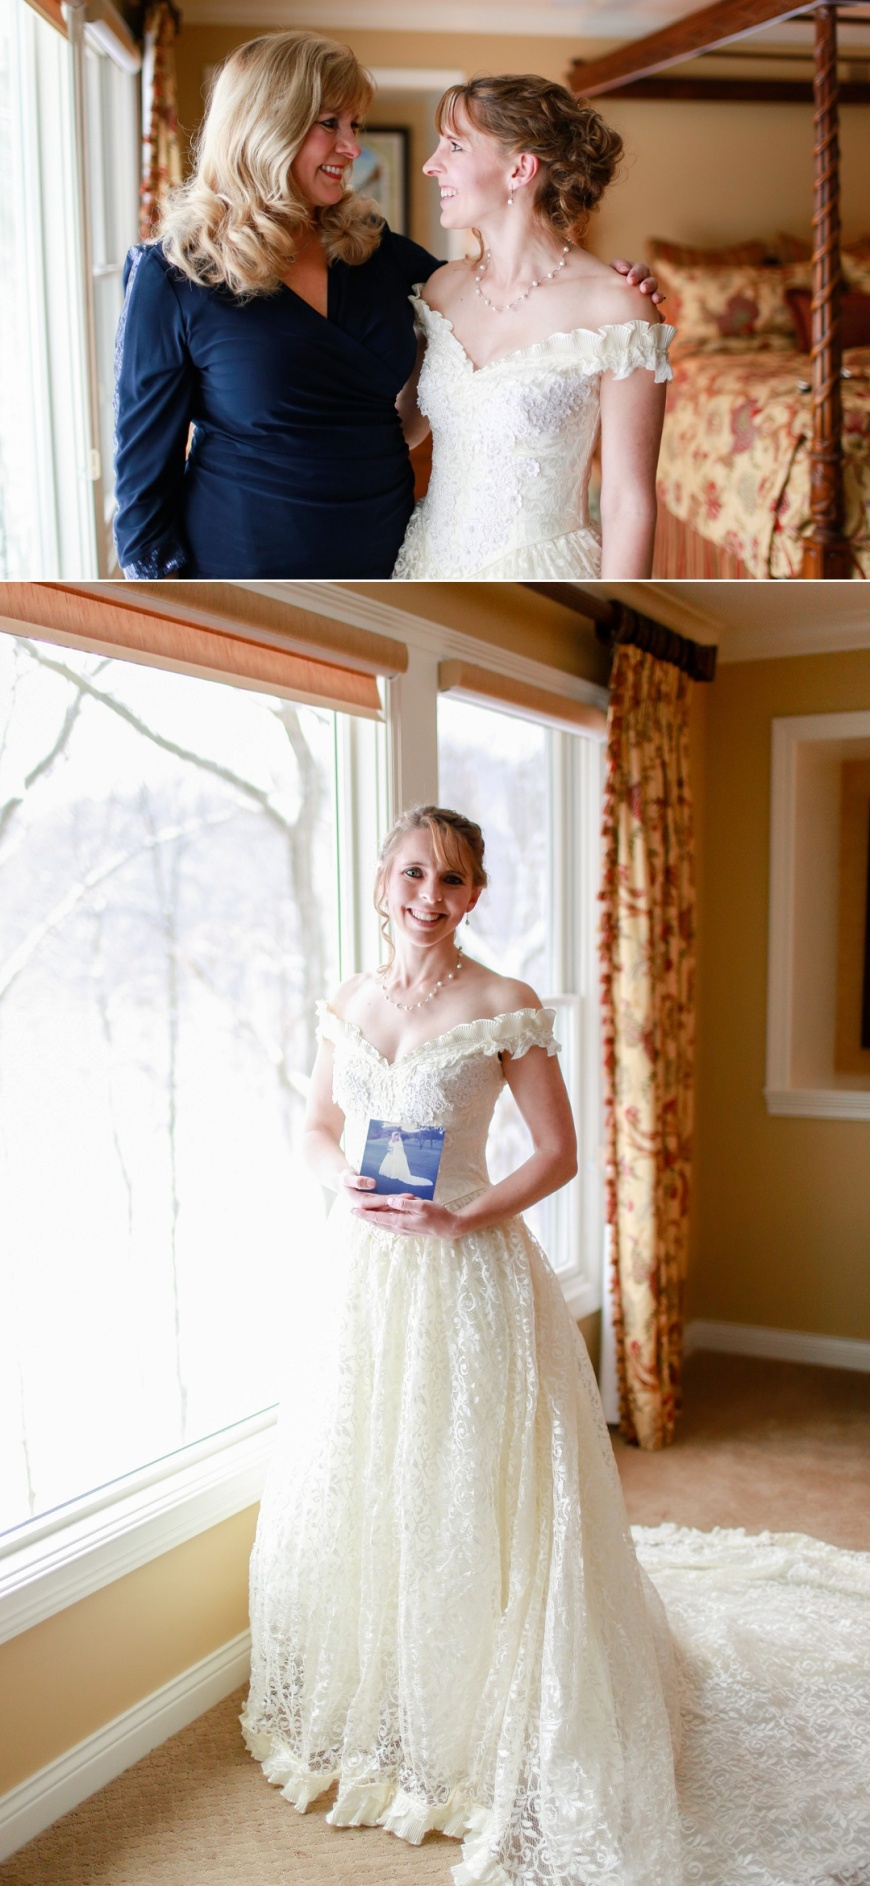 Kalamazoo-Winter-Wedding-Photographer_1012.jpg